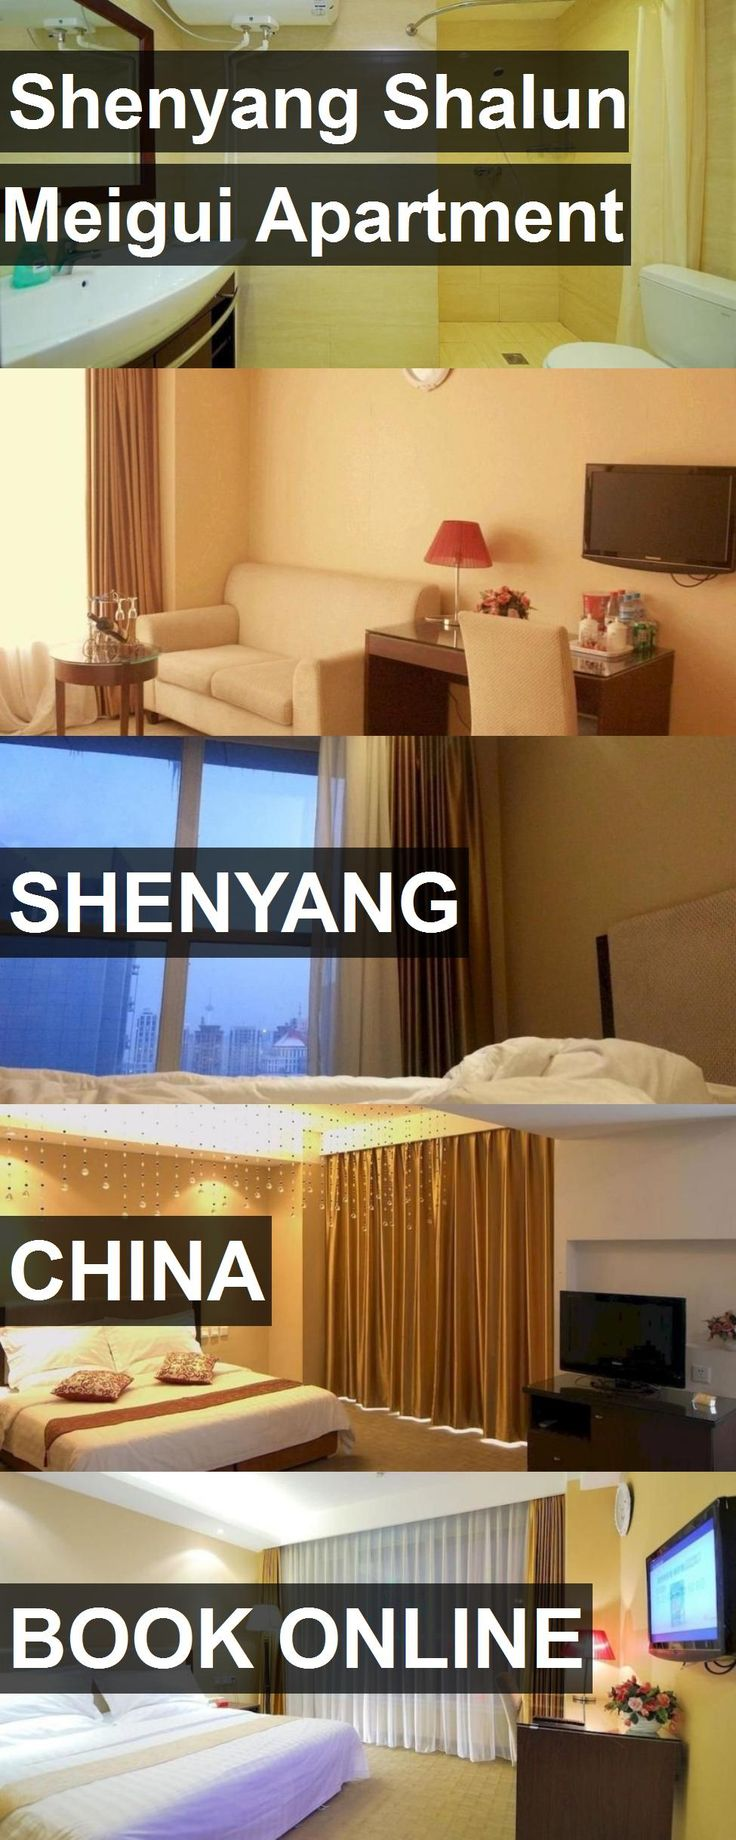 Shenyang Shalun Meigui Apartment in Shenyang, China. For more information, photos, reviews and best prices please follow the link. #China #Shenyang #travel #vacation #apartment